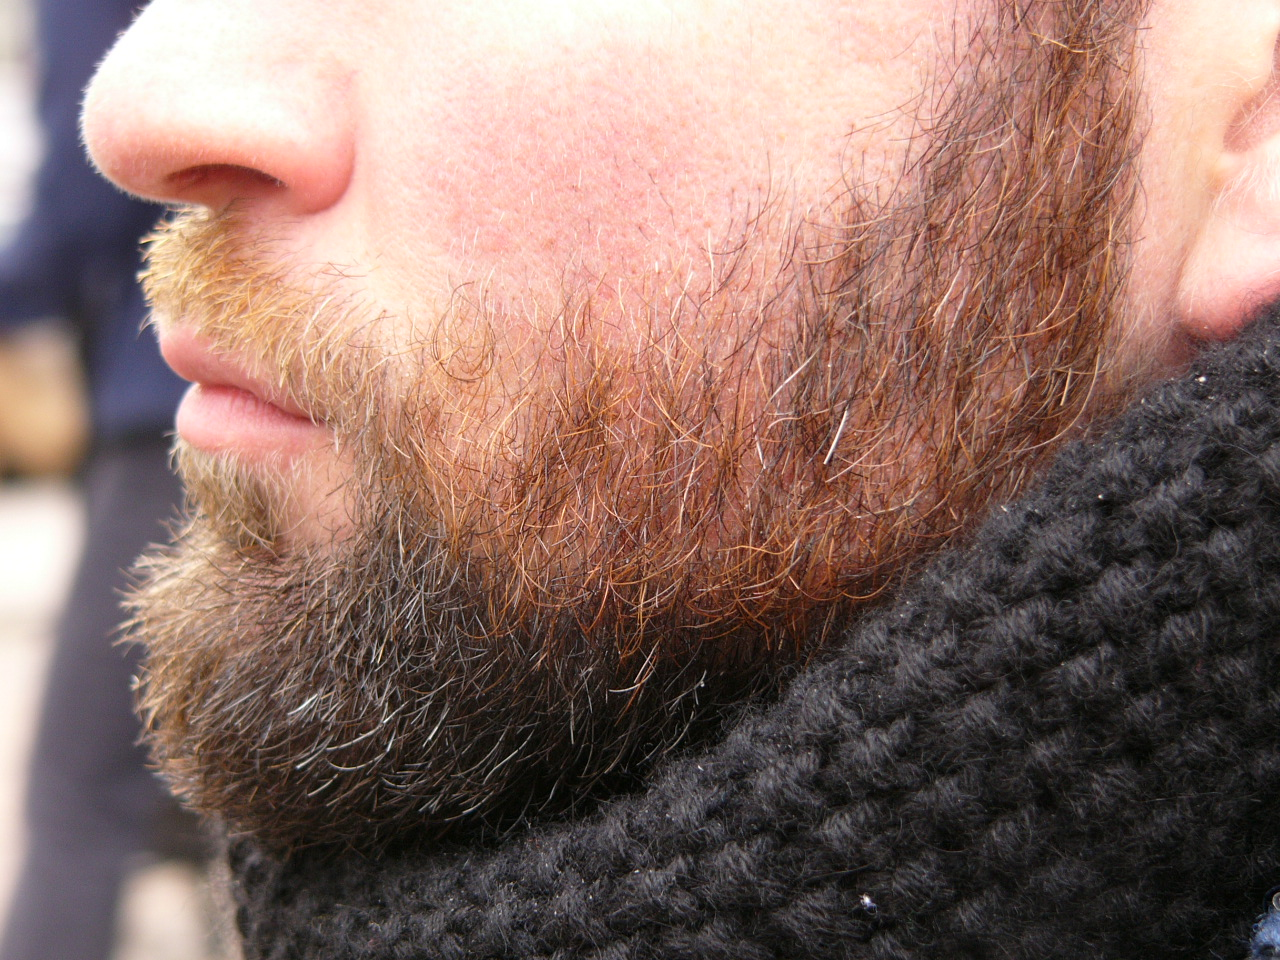 MyFrenchLife™ - MyFrenchLife.org - Beard trimmer - French Beard